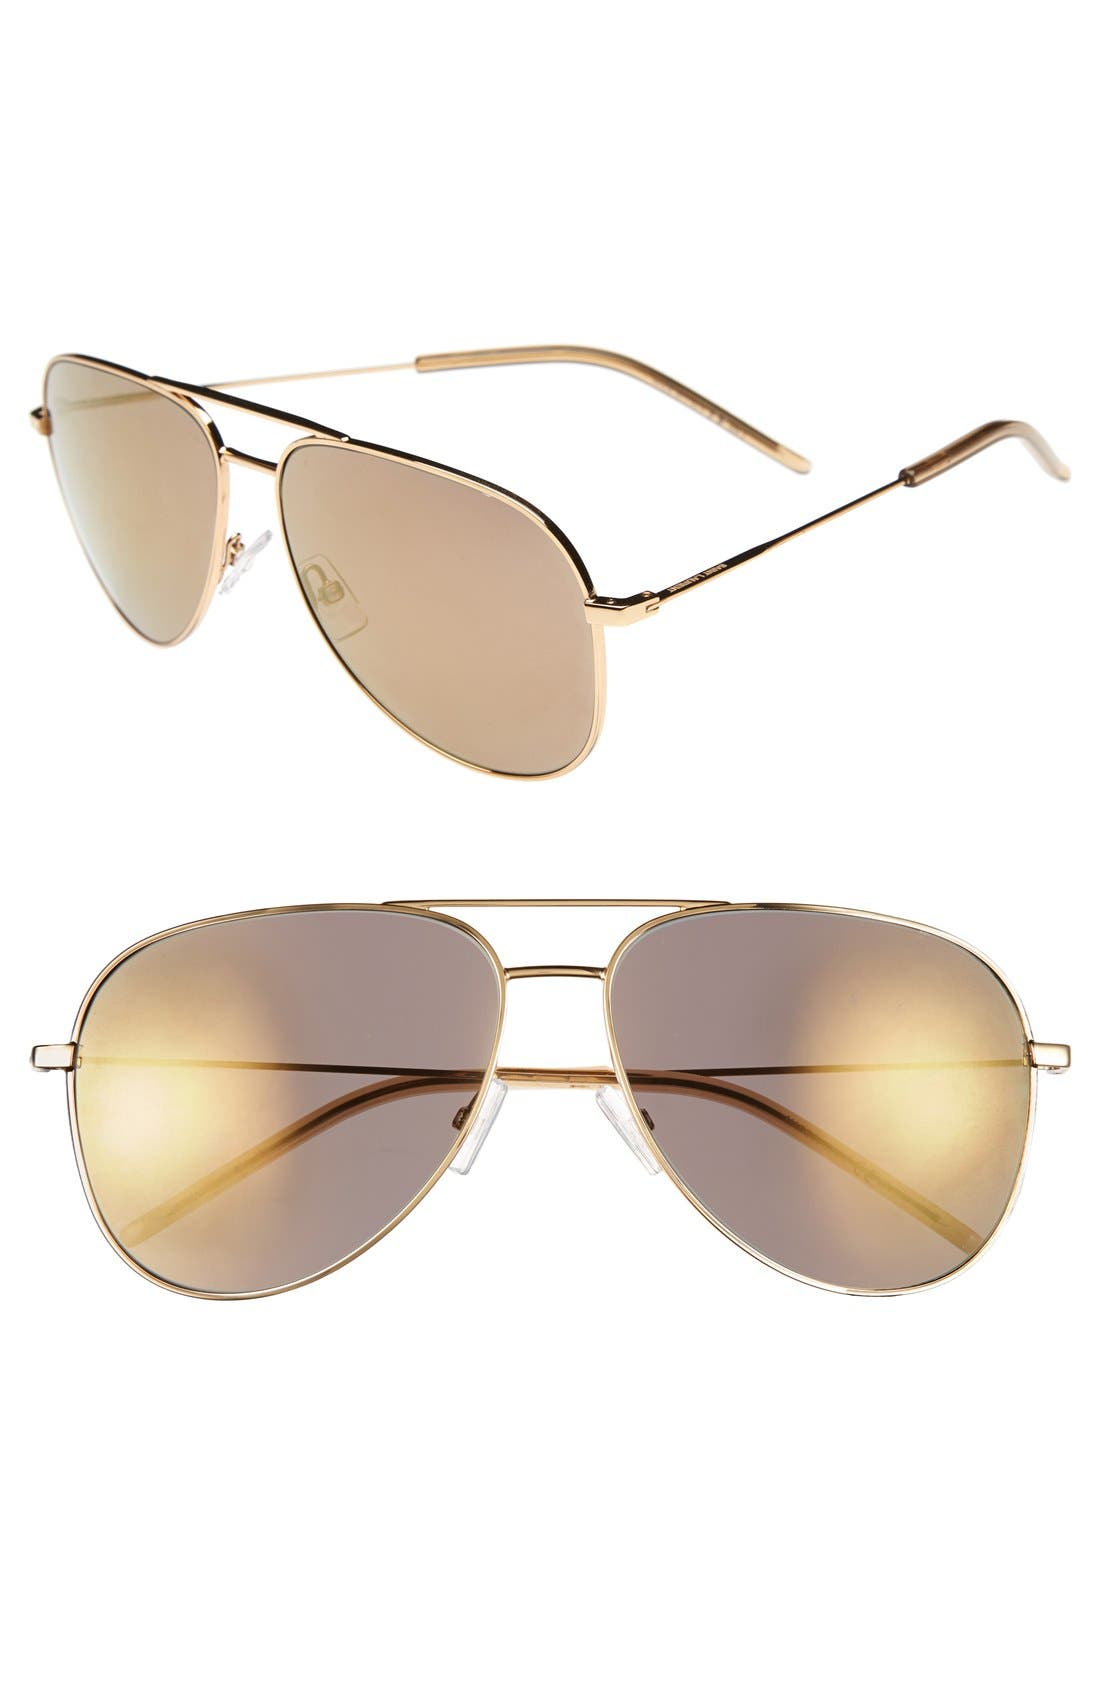 Alternate Image 1 Selected - Saint Laurent 59mm Aviator Sunglasses